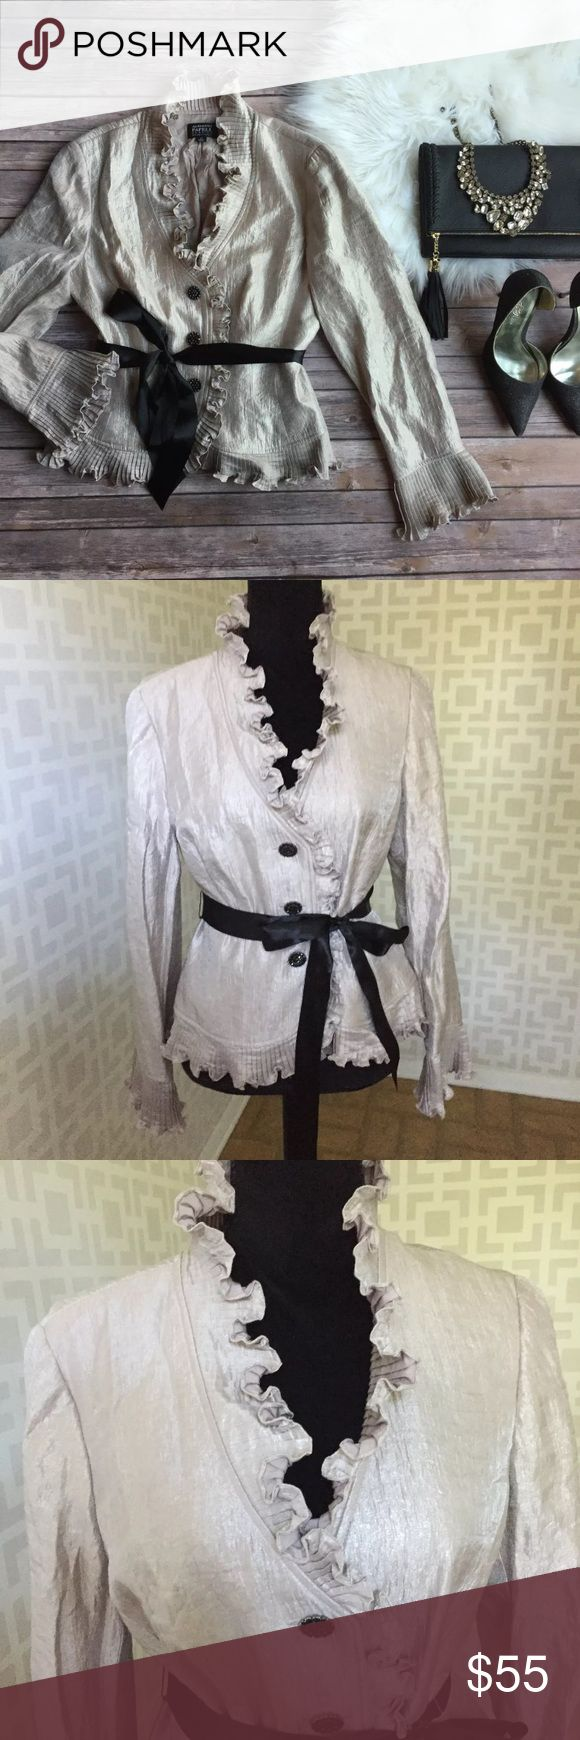 🆕 Adrianna Papell Evening Wear Metallic Blouse 10 Excellent used condition Adrianna Papell Tops Blouses